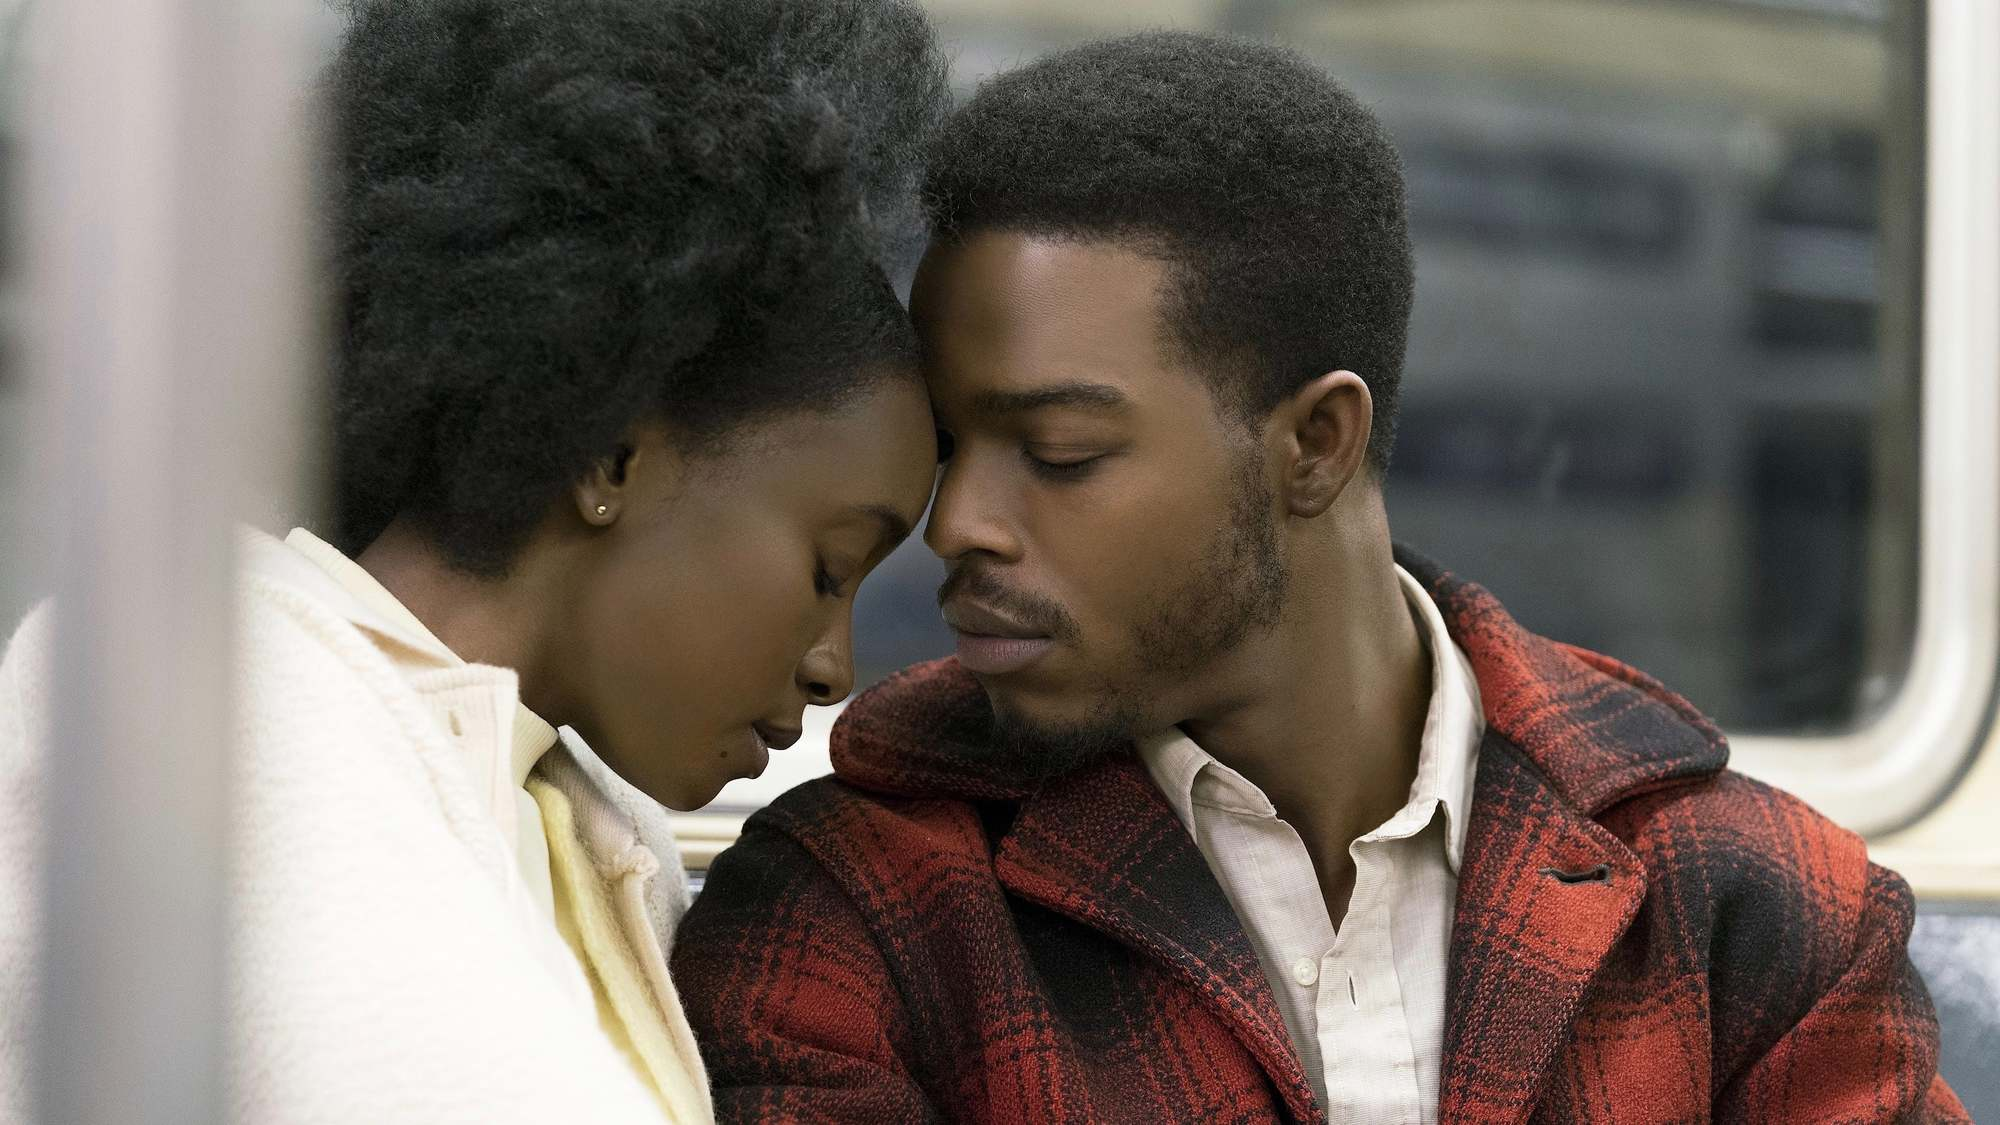 Image: If Beale Street Could Talk/TMDb